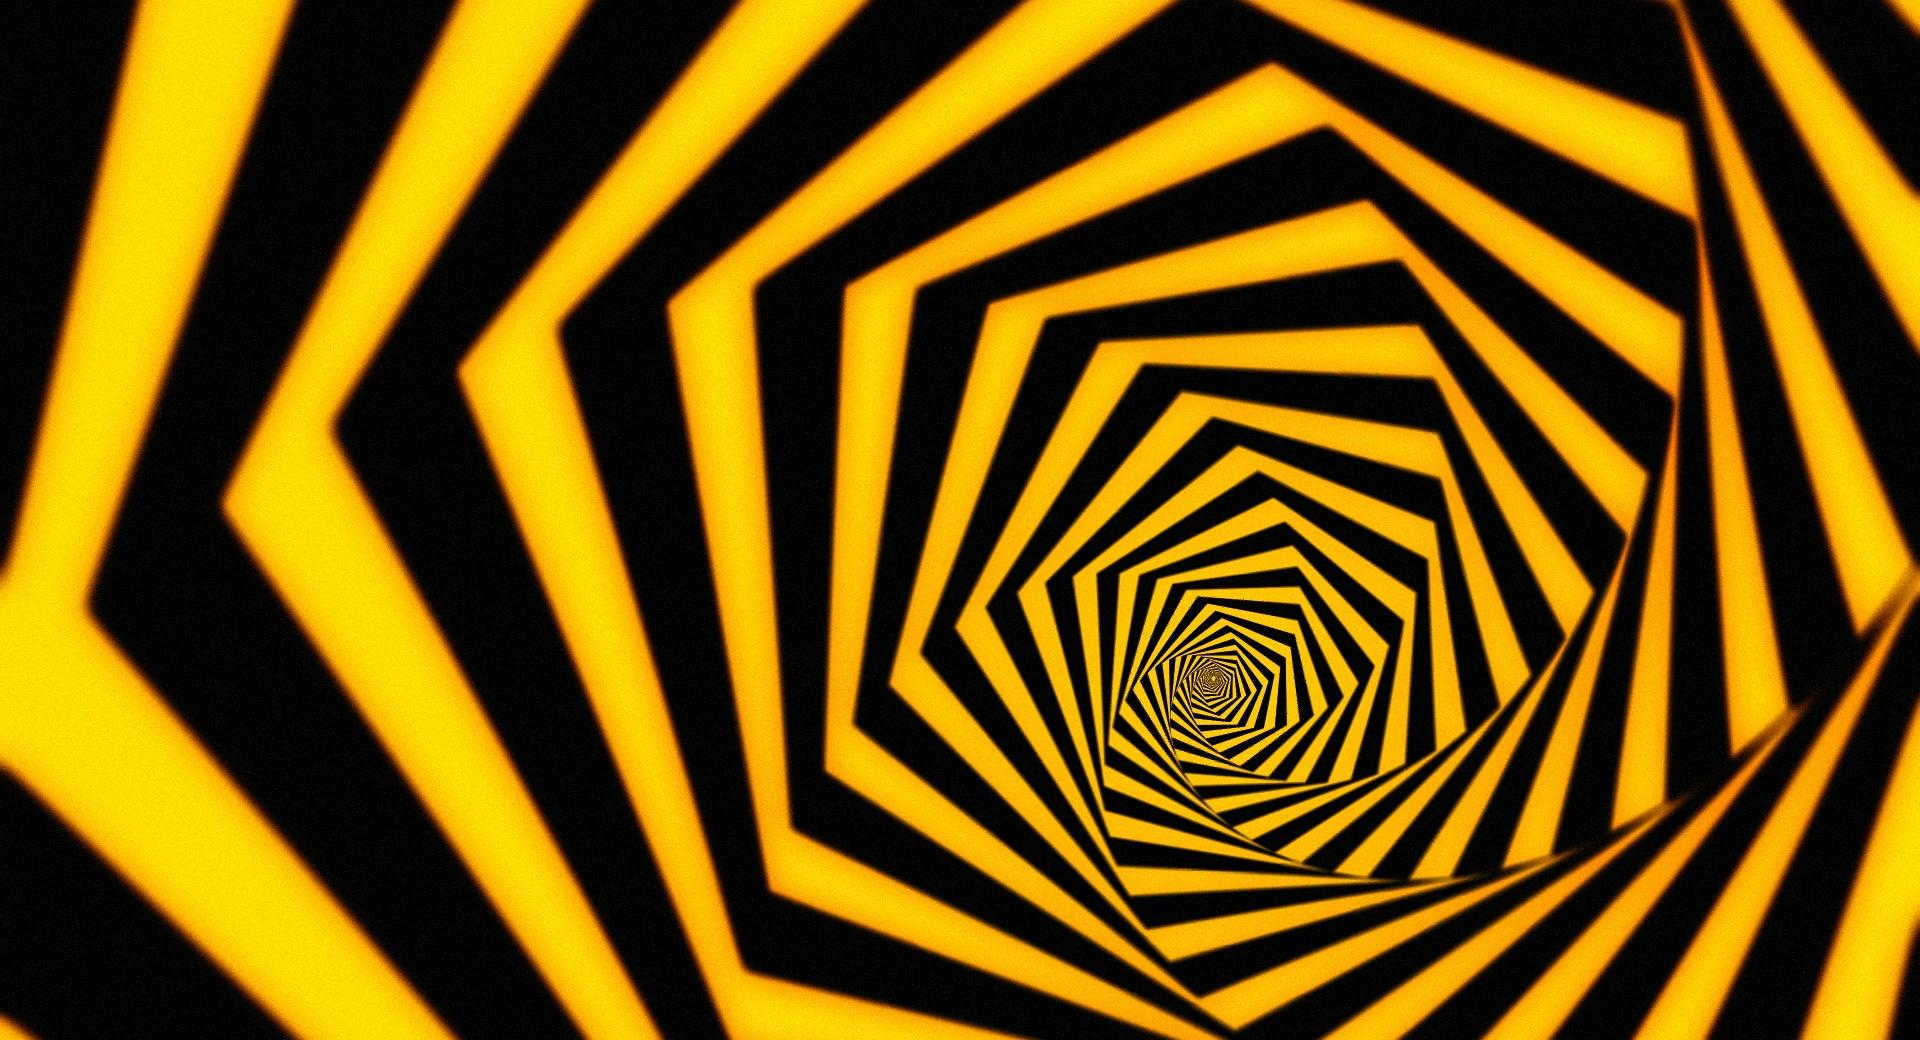 Hypnotic at 640 x 1136 iPhone 5 size wallpapers HD quality